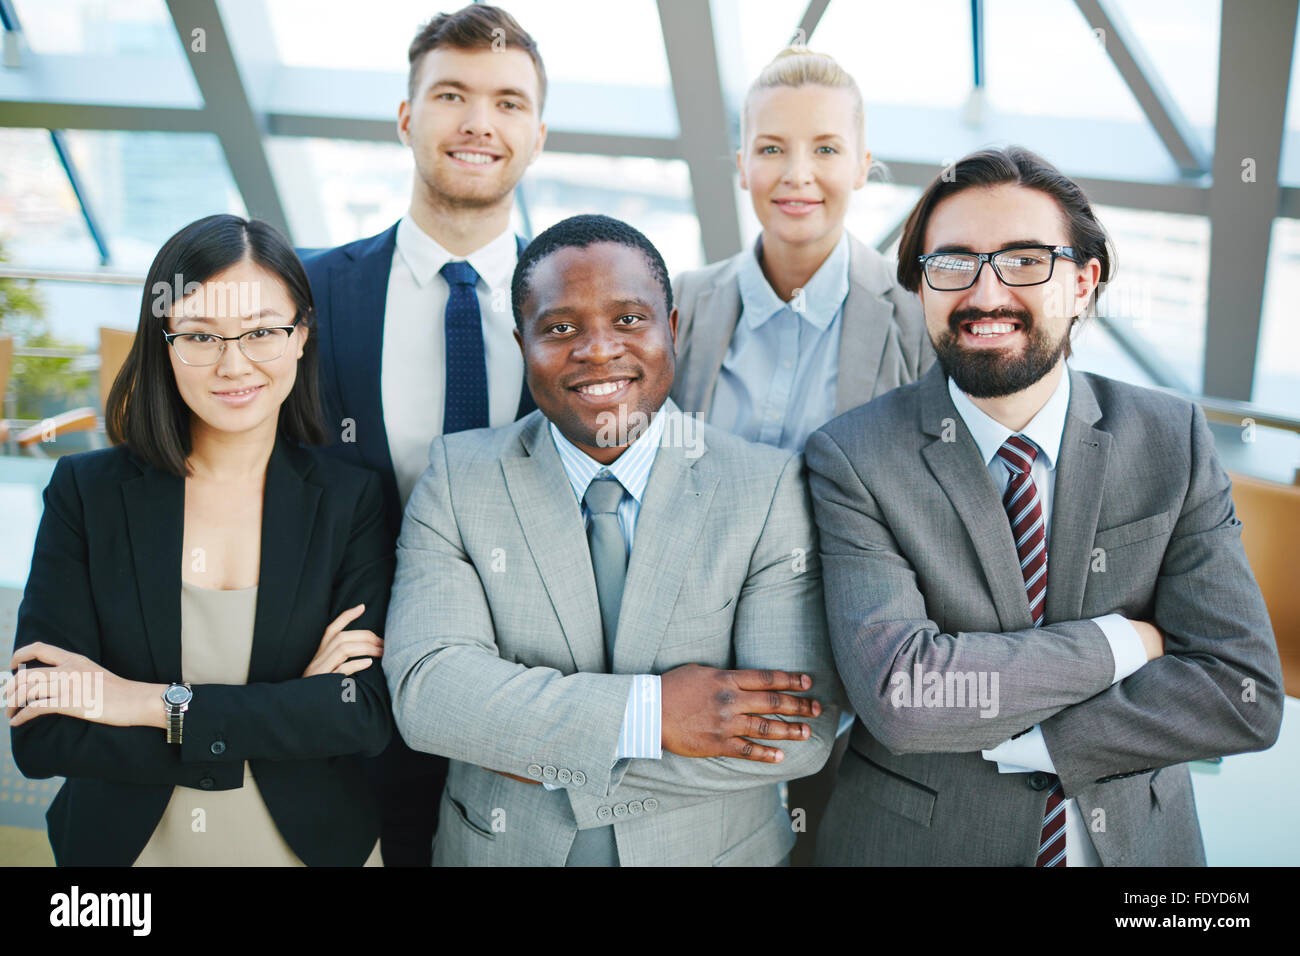 Successful managers looking at camera with smiles - Stock Image